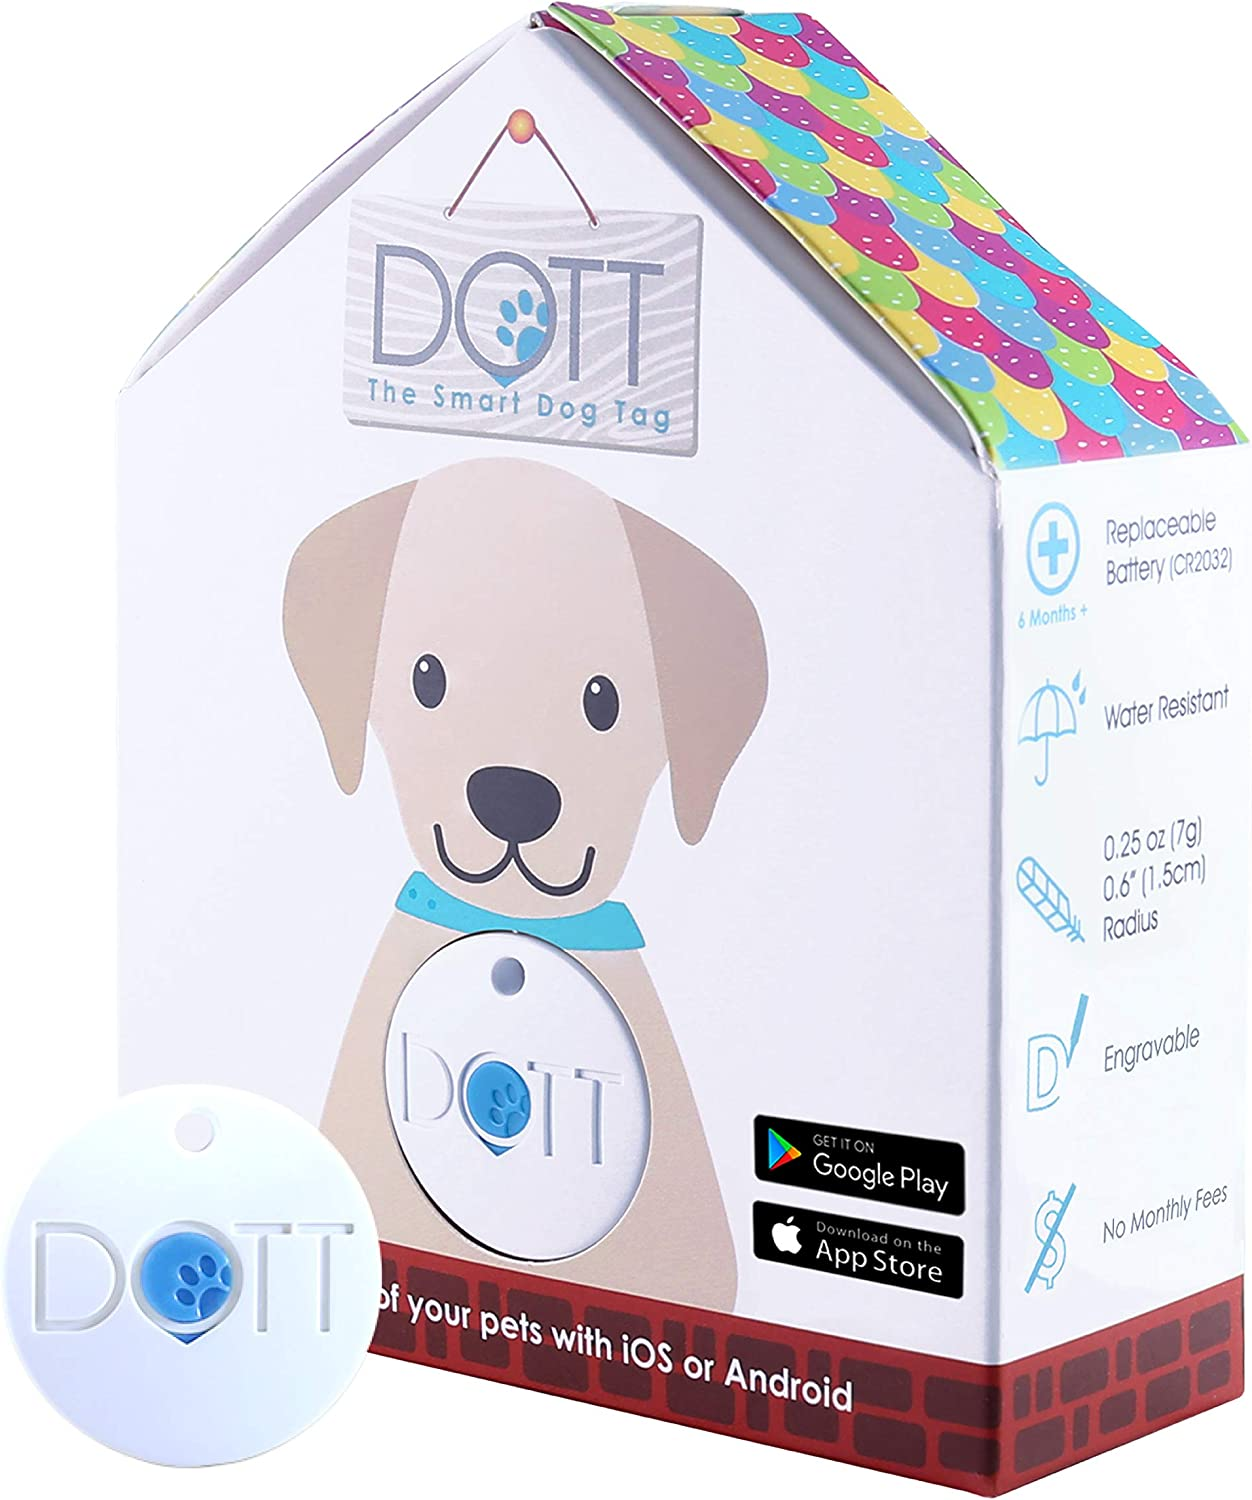 DOTT The Smart Tag blueetooth Tracker for Dogs and Cats, Pet Finder